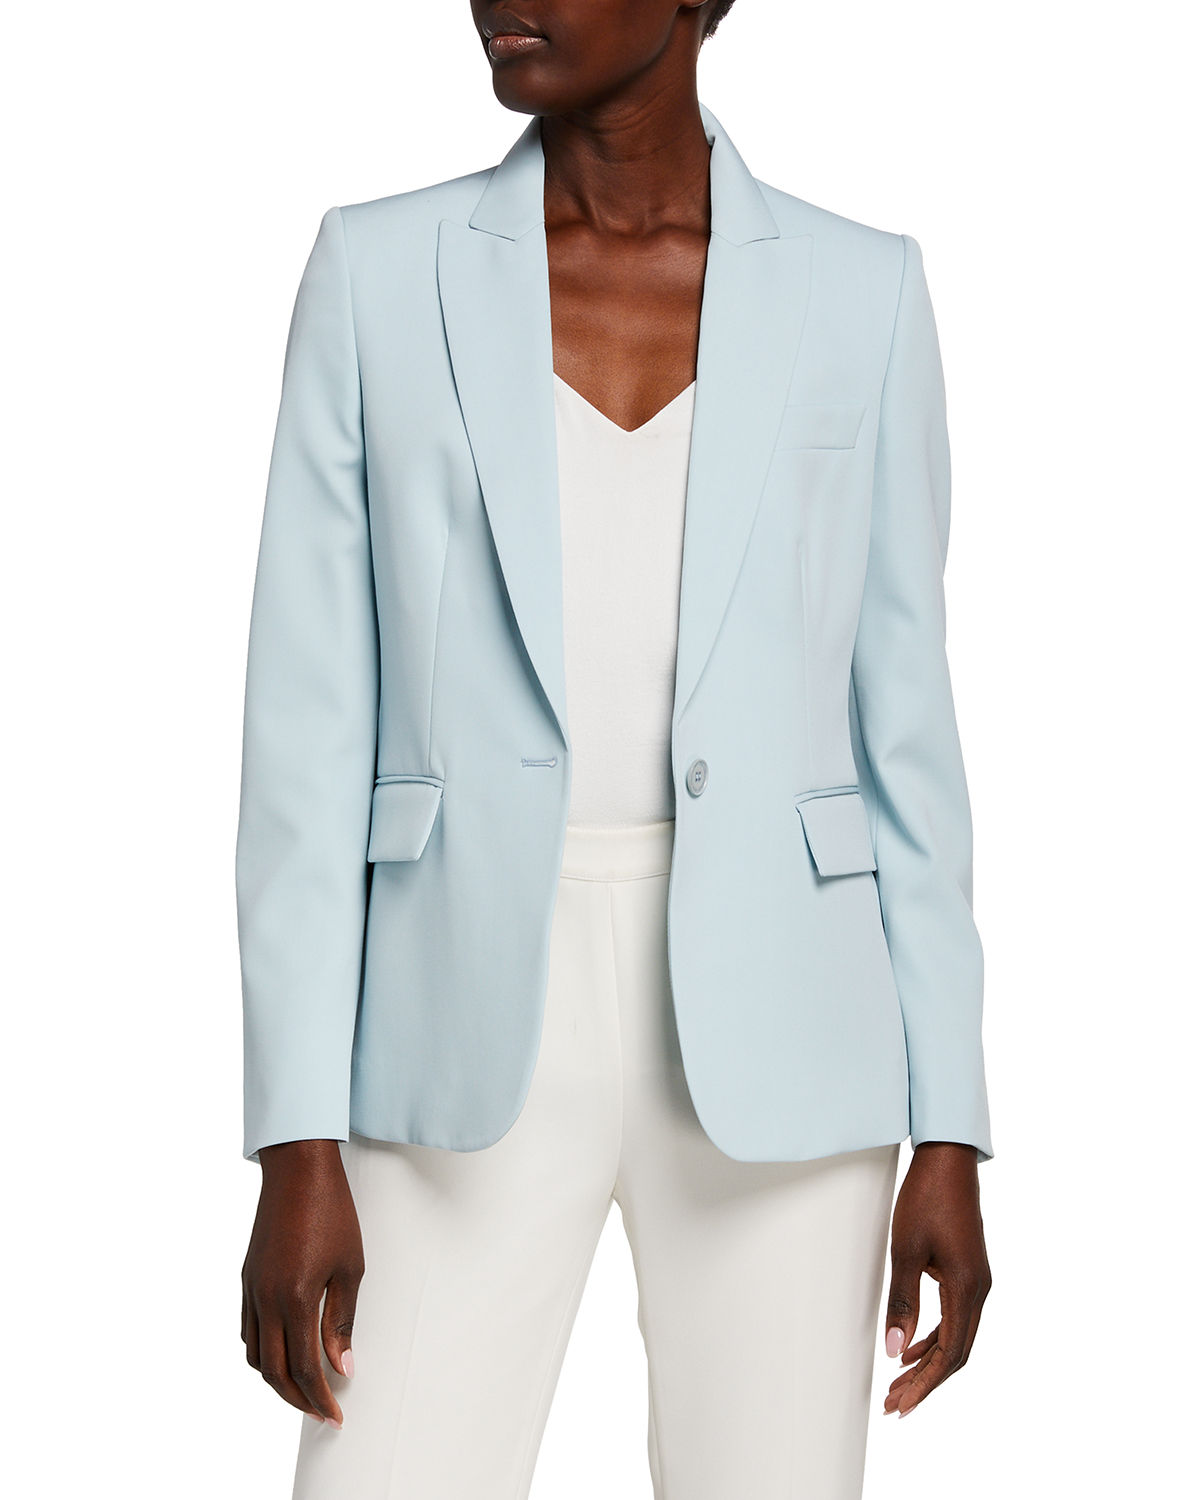 Stella McCartney Stretch Wool Tailored Jacket